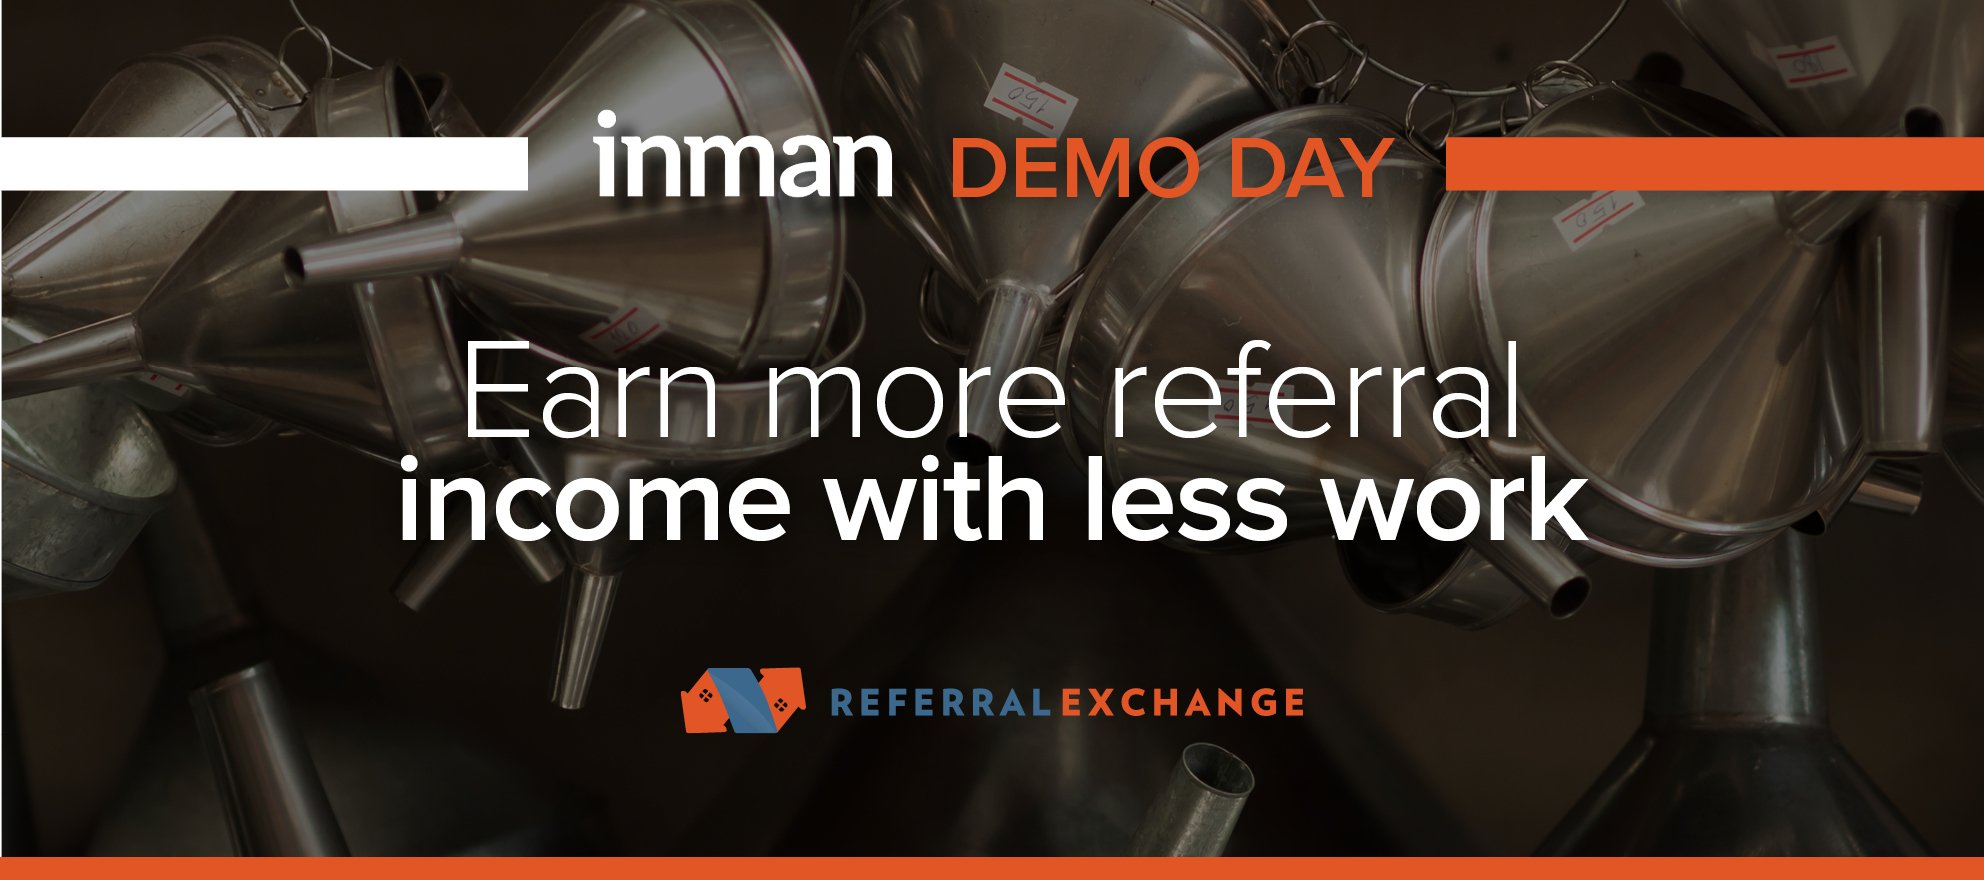 Earn more referral income with less work using ReferralExchange